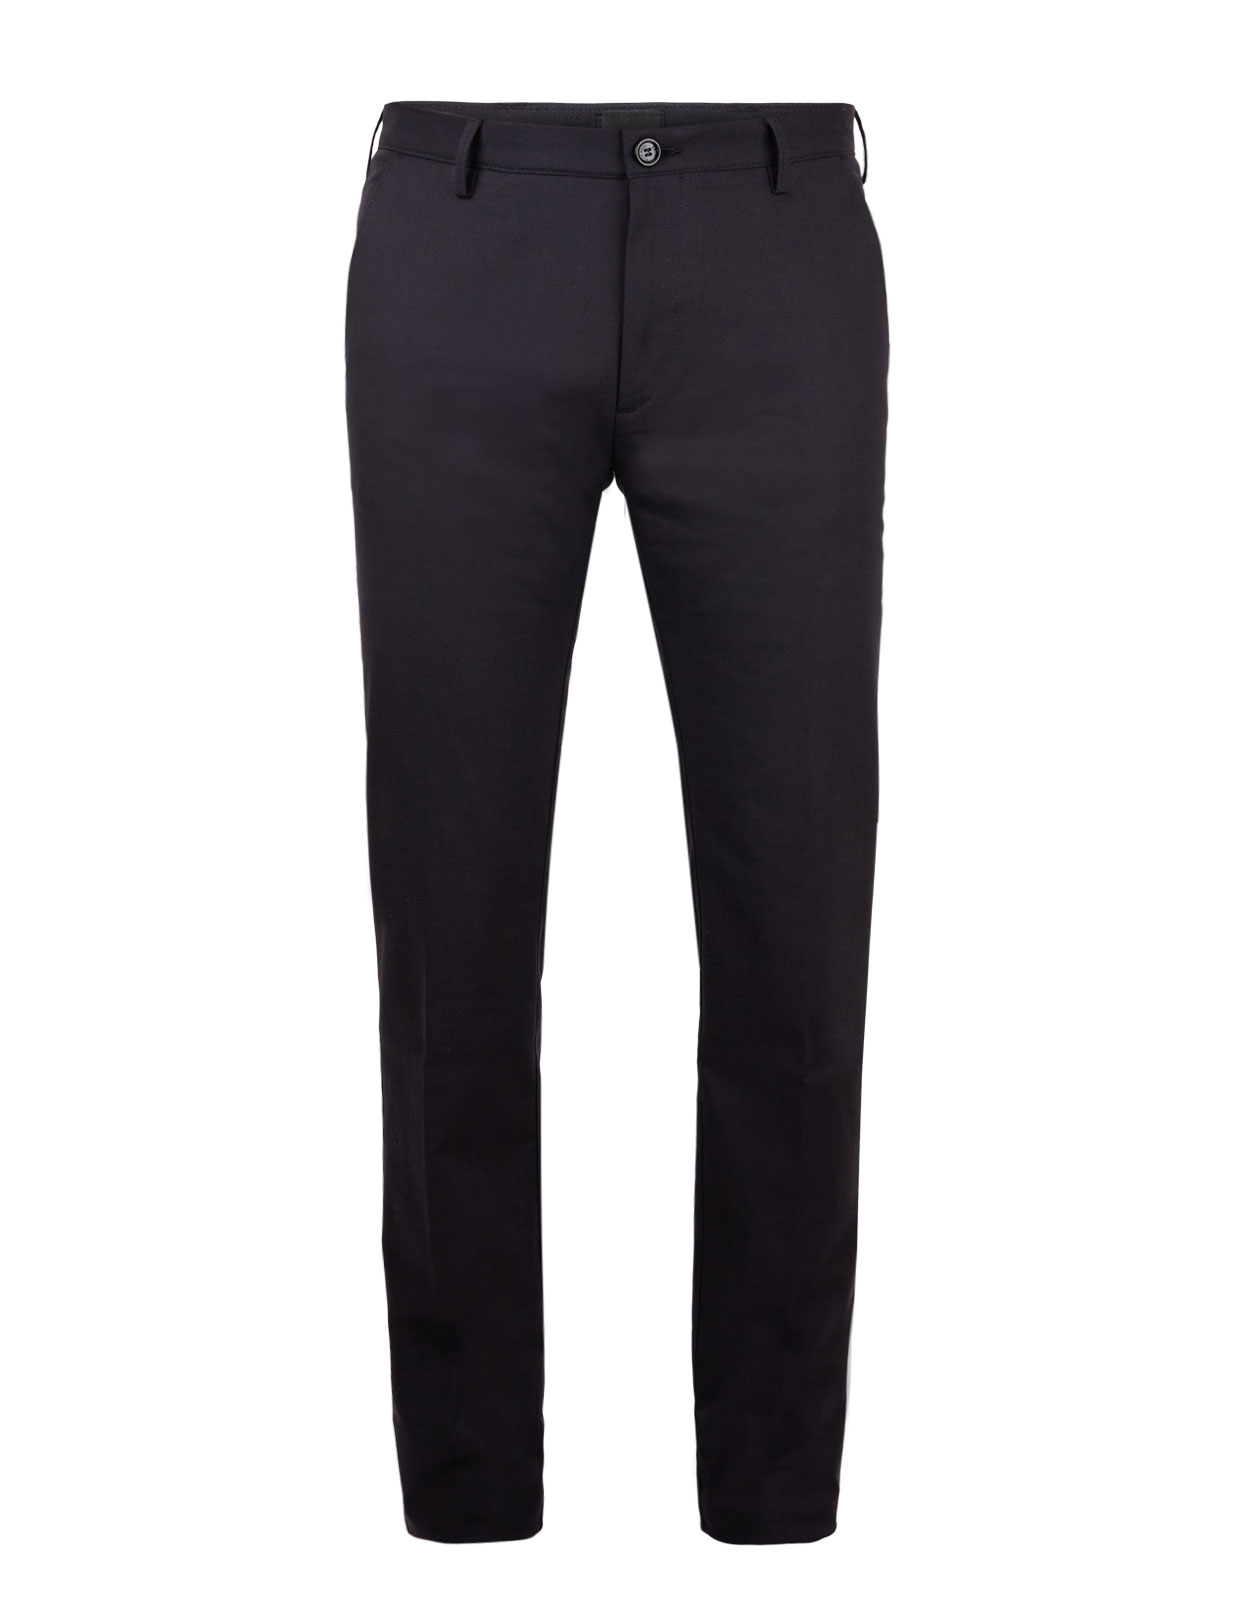 Rice-3-W Cotton Stretch Chinos Black